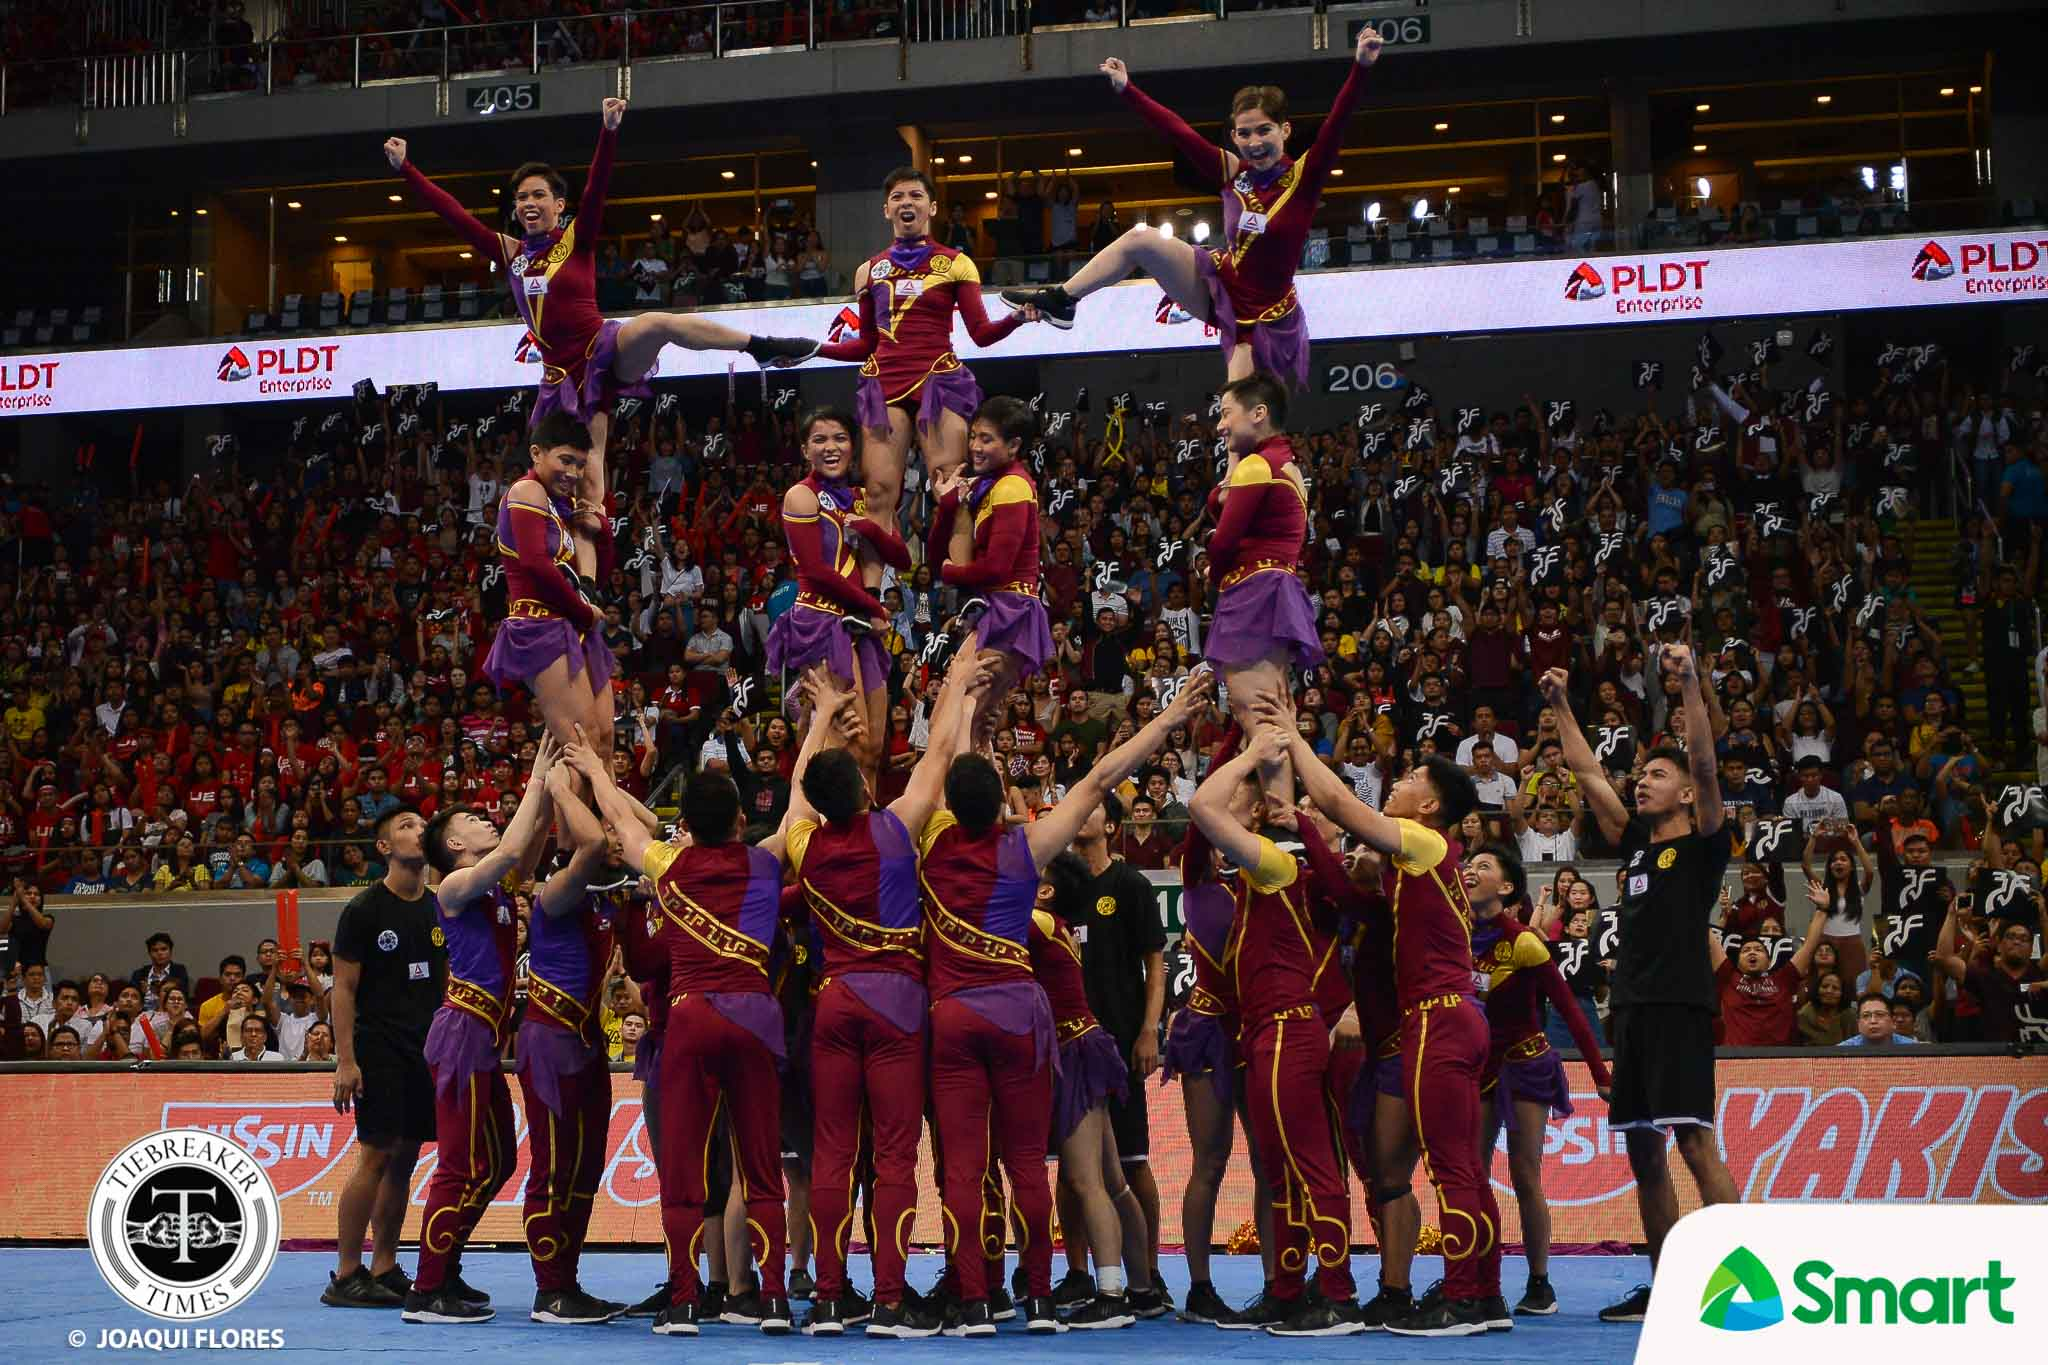 UAAP-80-CDC-UP-1096-1 Rookie-laden UP Pep relishes UAAP return Cheerleading News UAAP UP  - philippine sports news